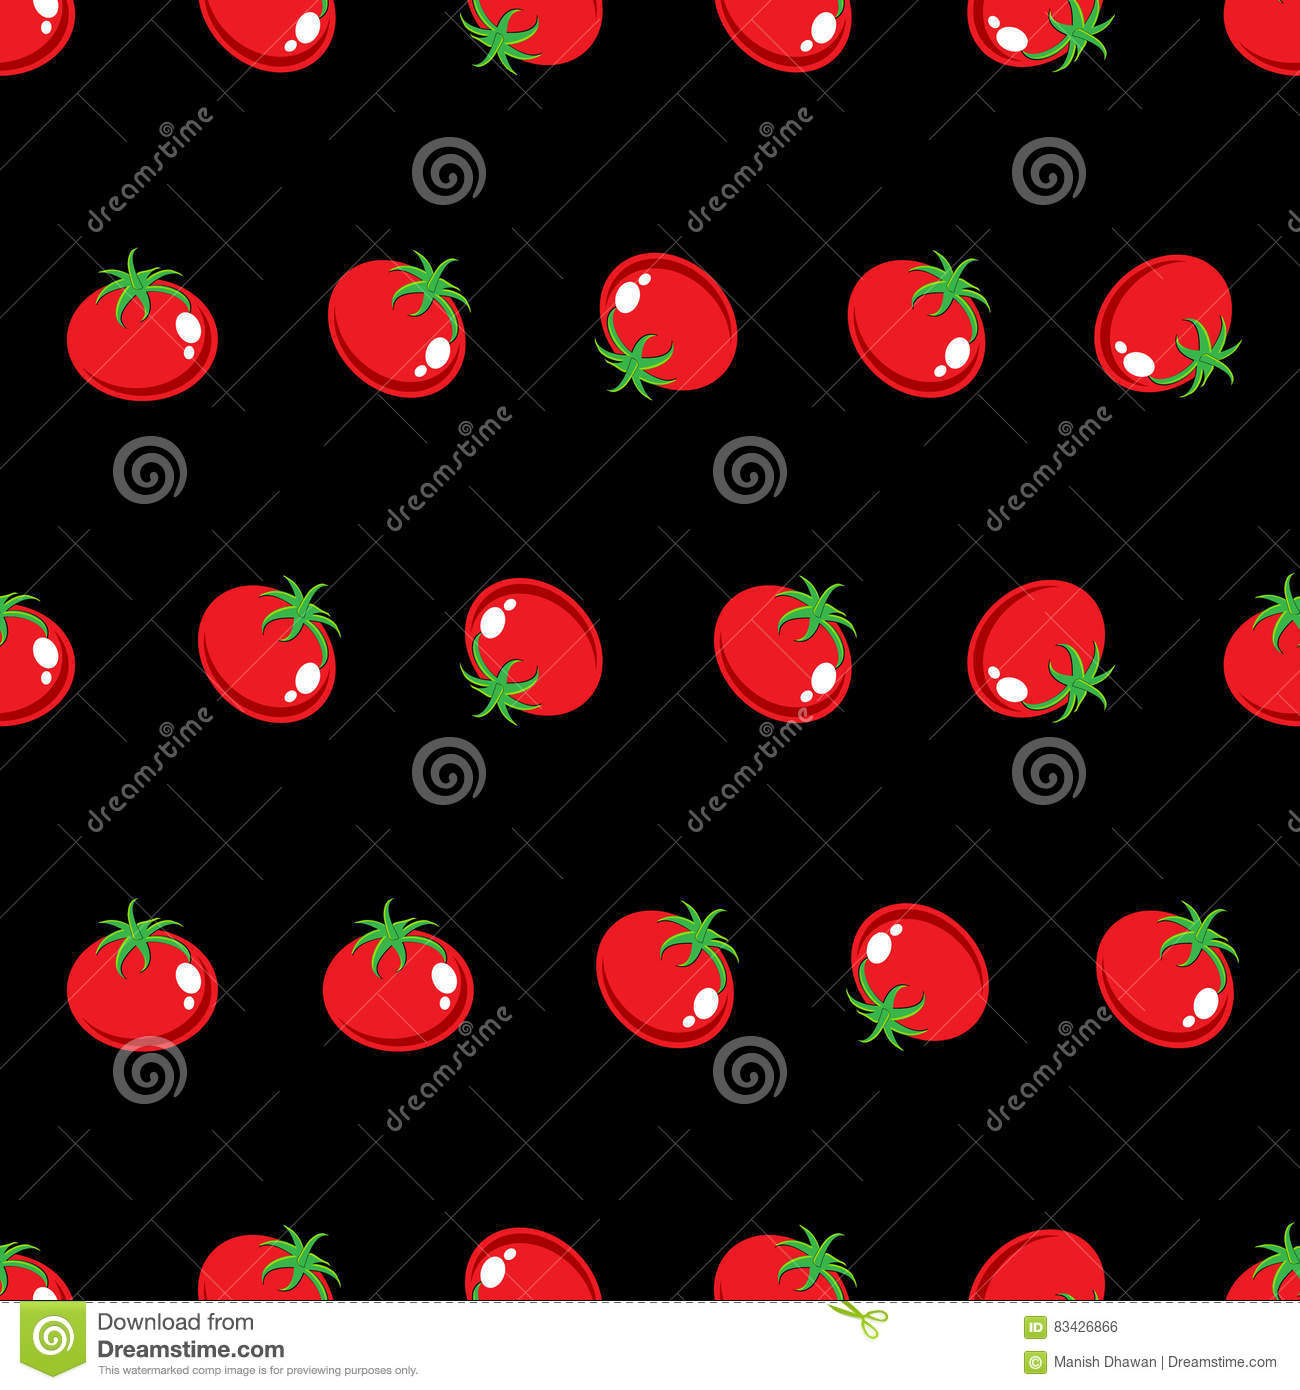 Stock Vector Red Tomato Pattern On Black Background Wallpaper Stock Vector Illustration Of Graphics Grass 83426866